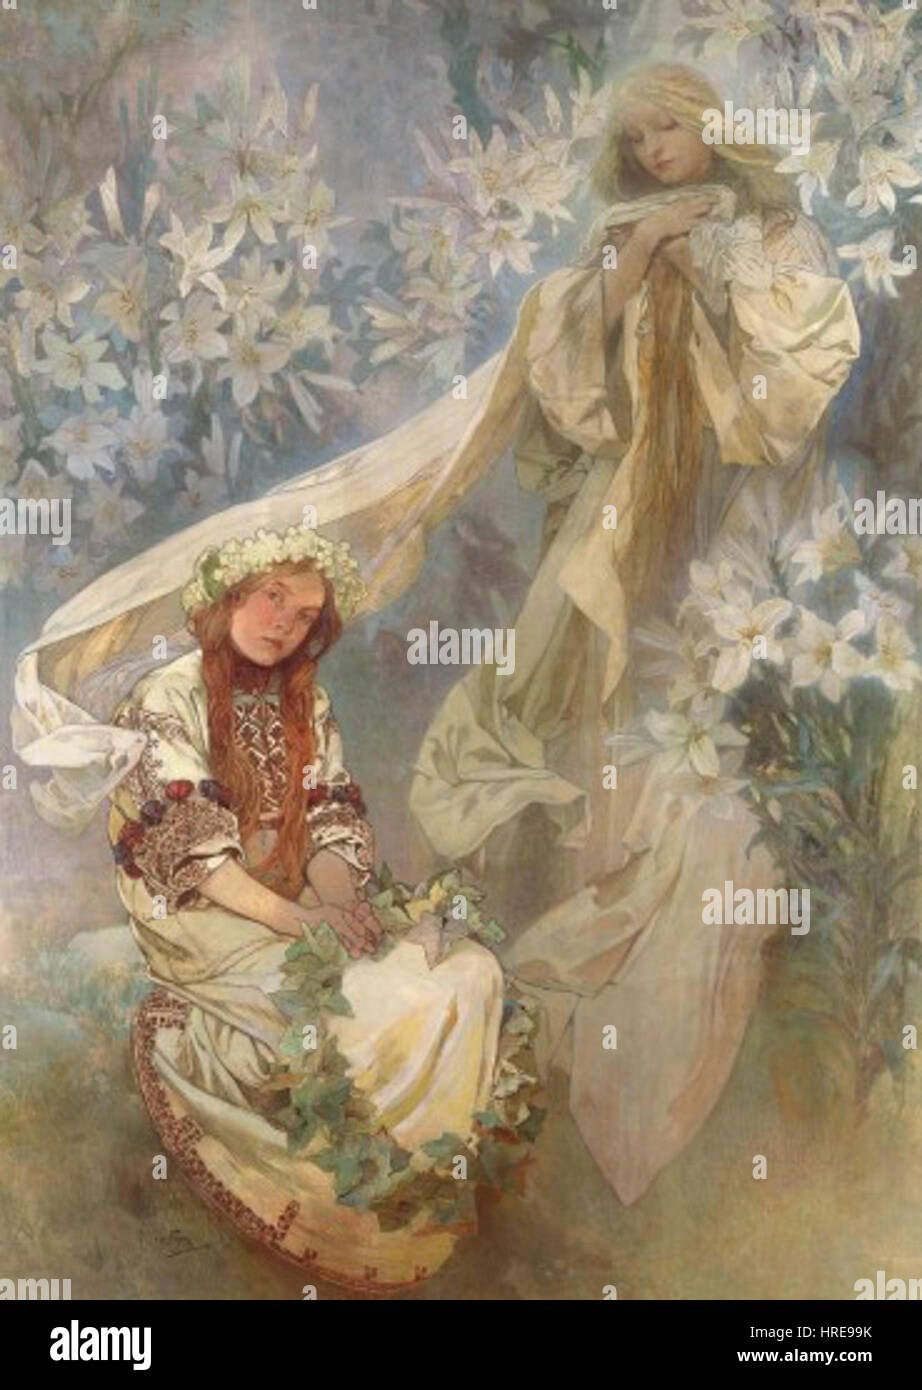 Madonna of the Lilies (1905) - Alfons Mucha - Stock Image